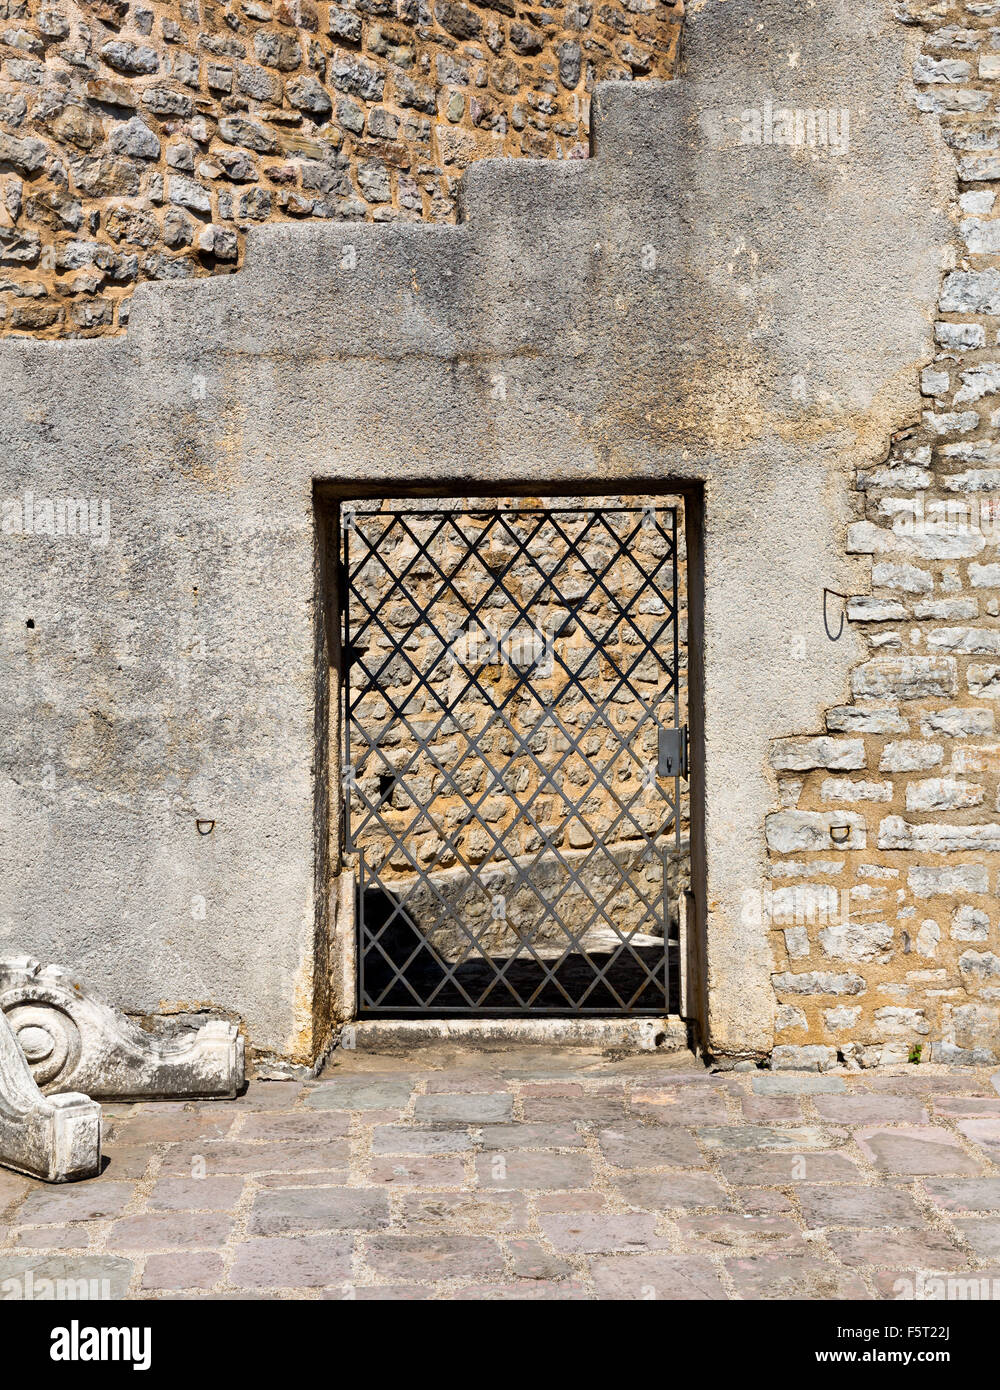 Arched old lattice door in a stone wall & Arched old lattice door in a stone wall Stock Photo: 89653610 - Alamy